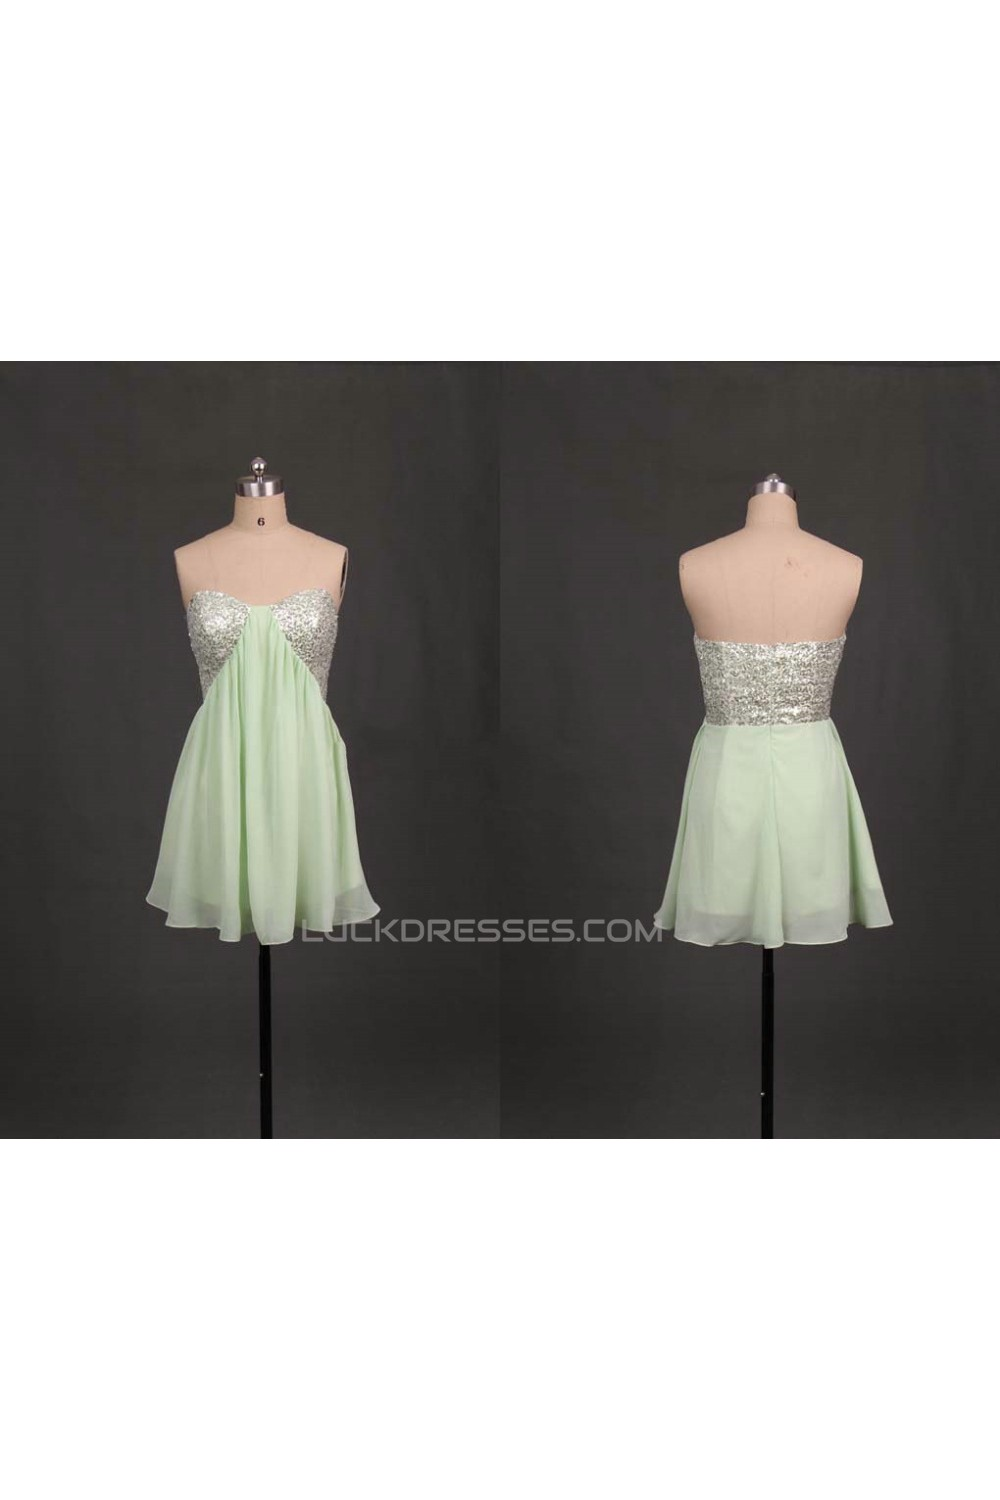 452e71ce84e A-Line Sweetheart Sequins Short Chiffon Prom Evening Formal ...